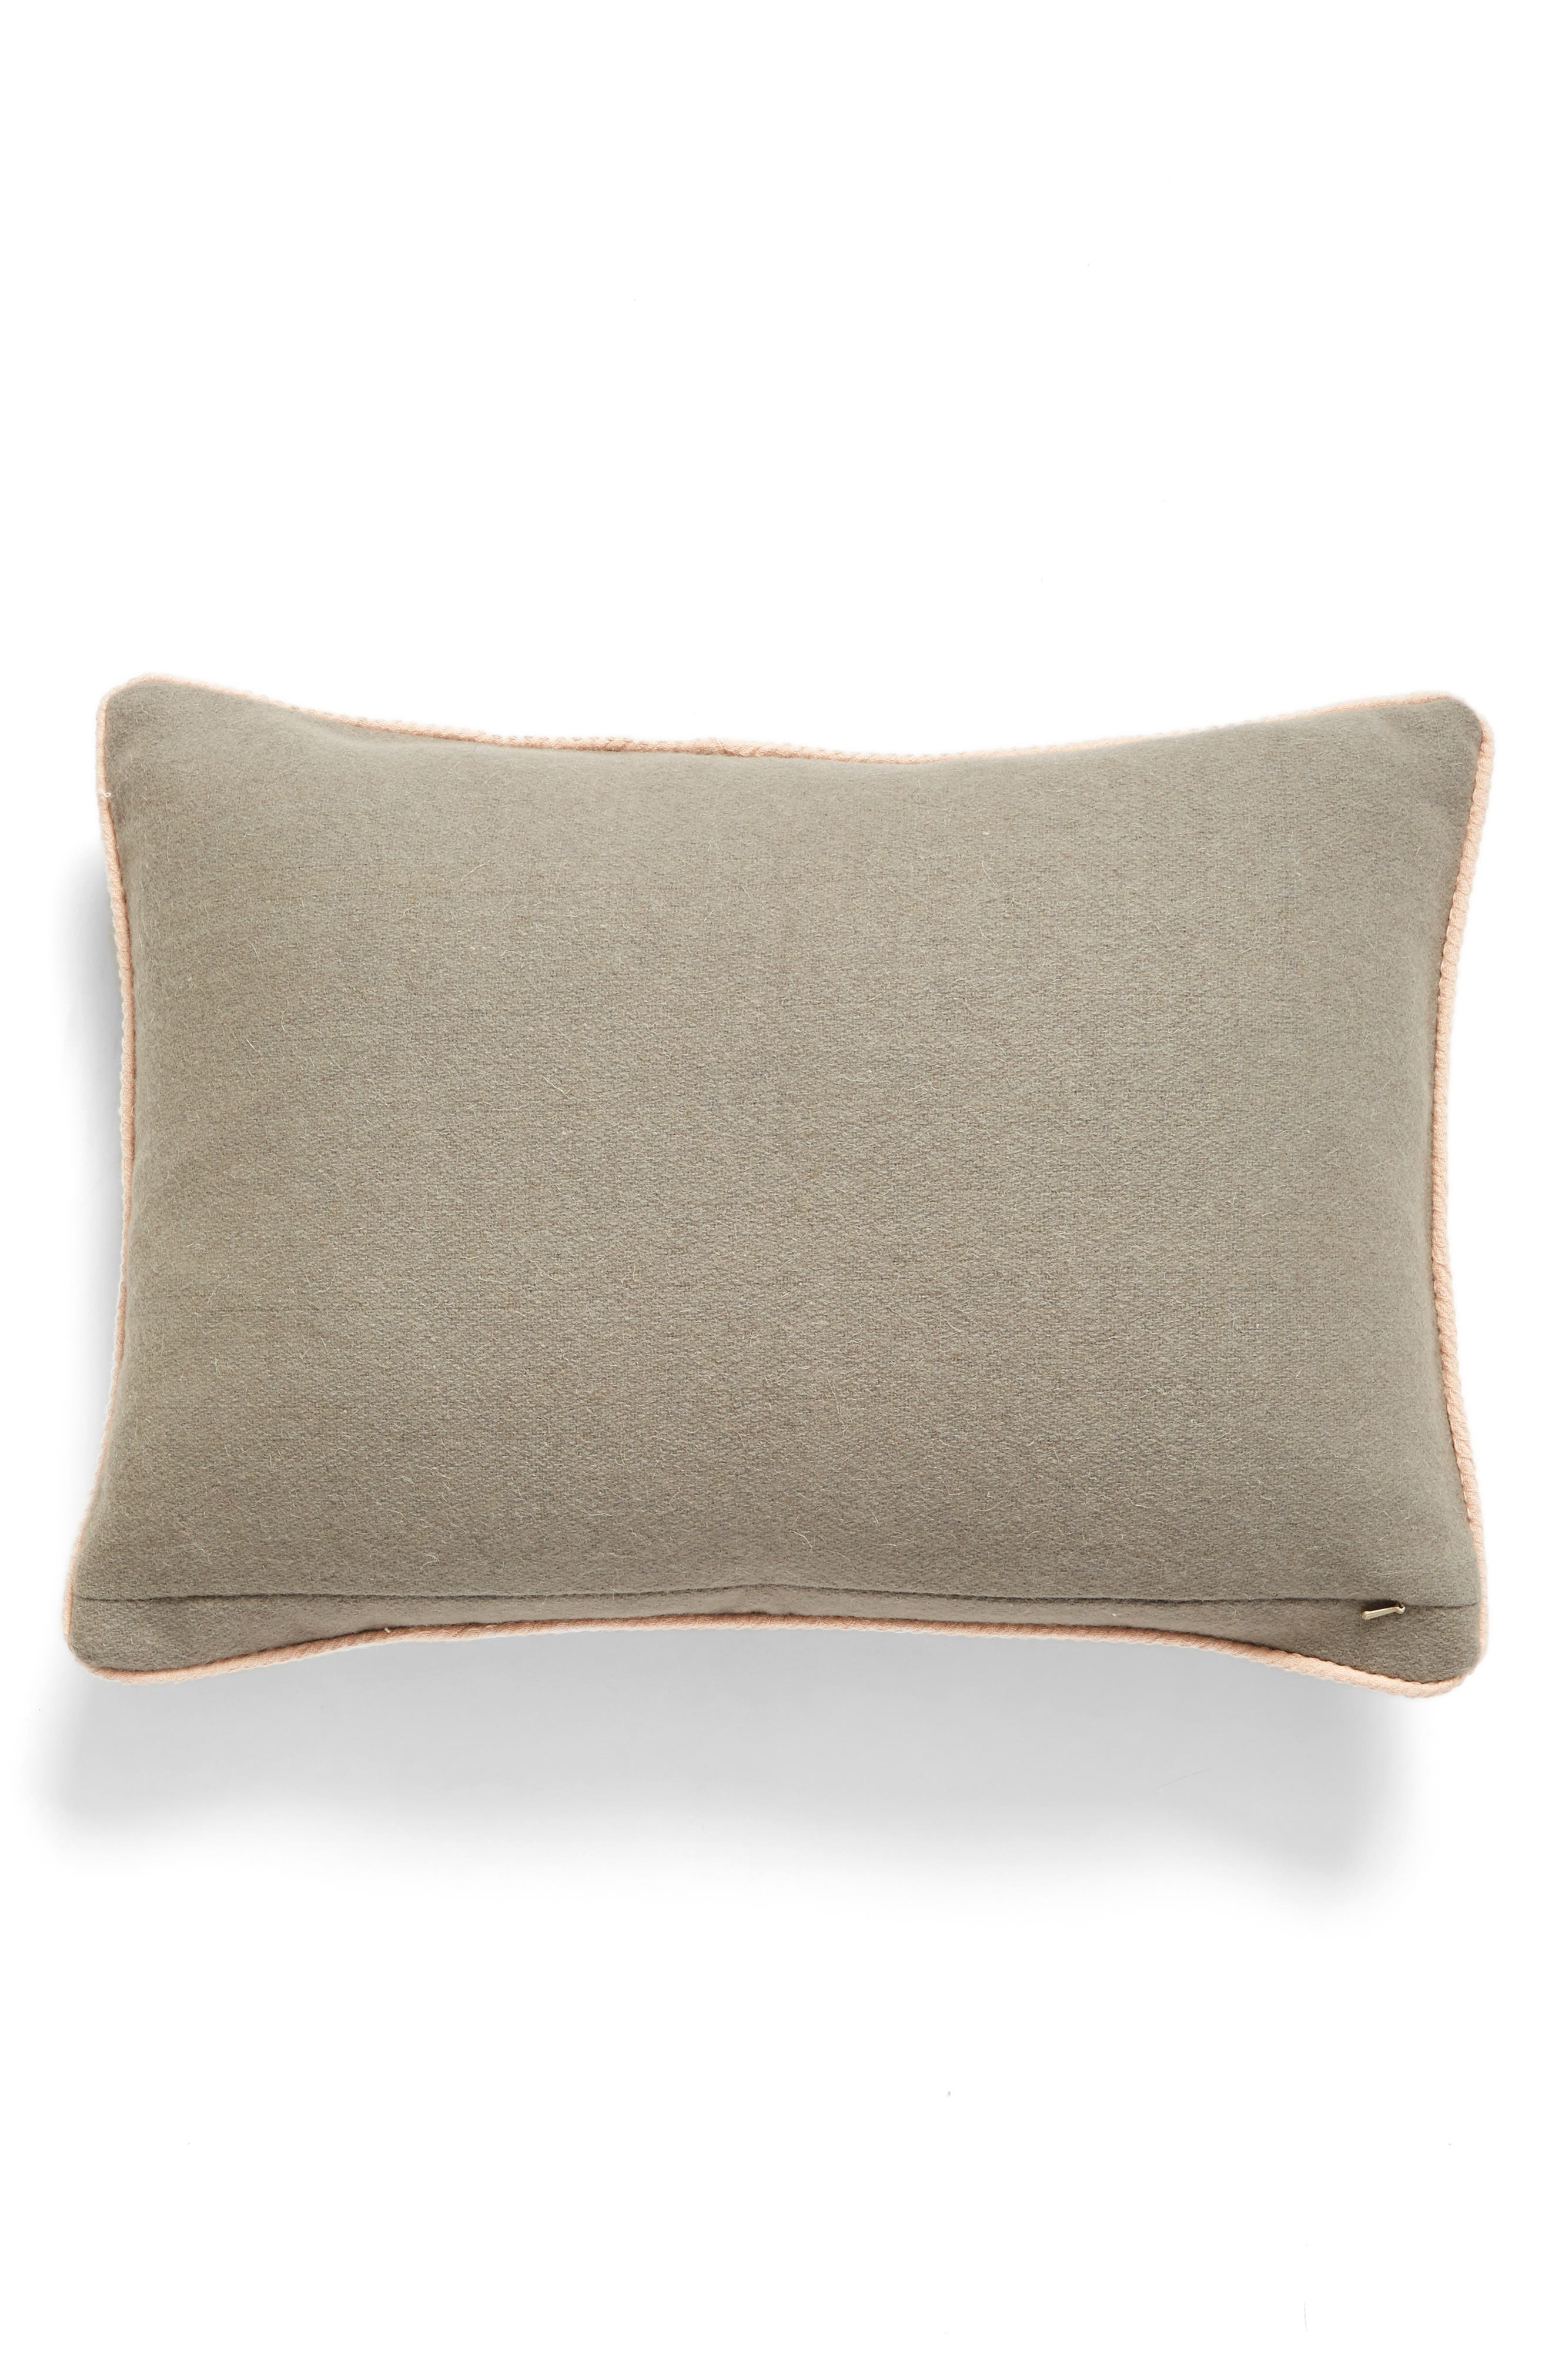 NORDSTROM AT HOME,                             XOXO Accent Pillow,                             Alternate thumbnail 2, color,                             020